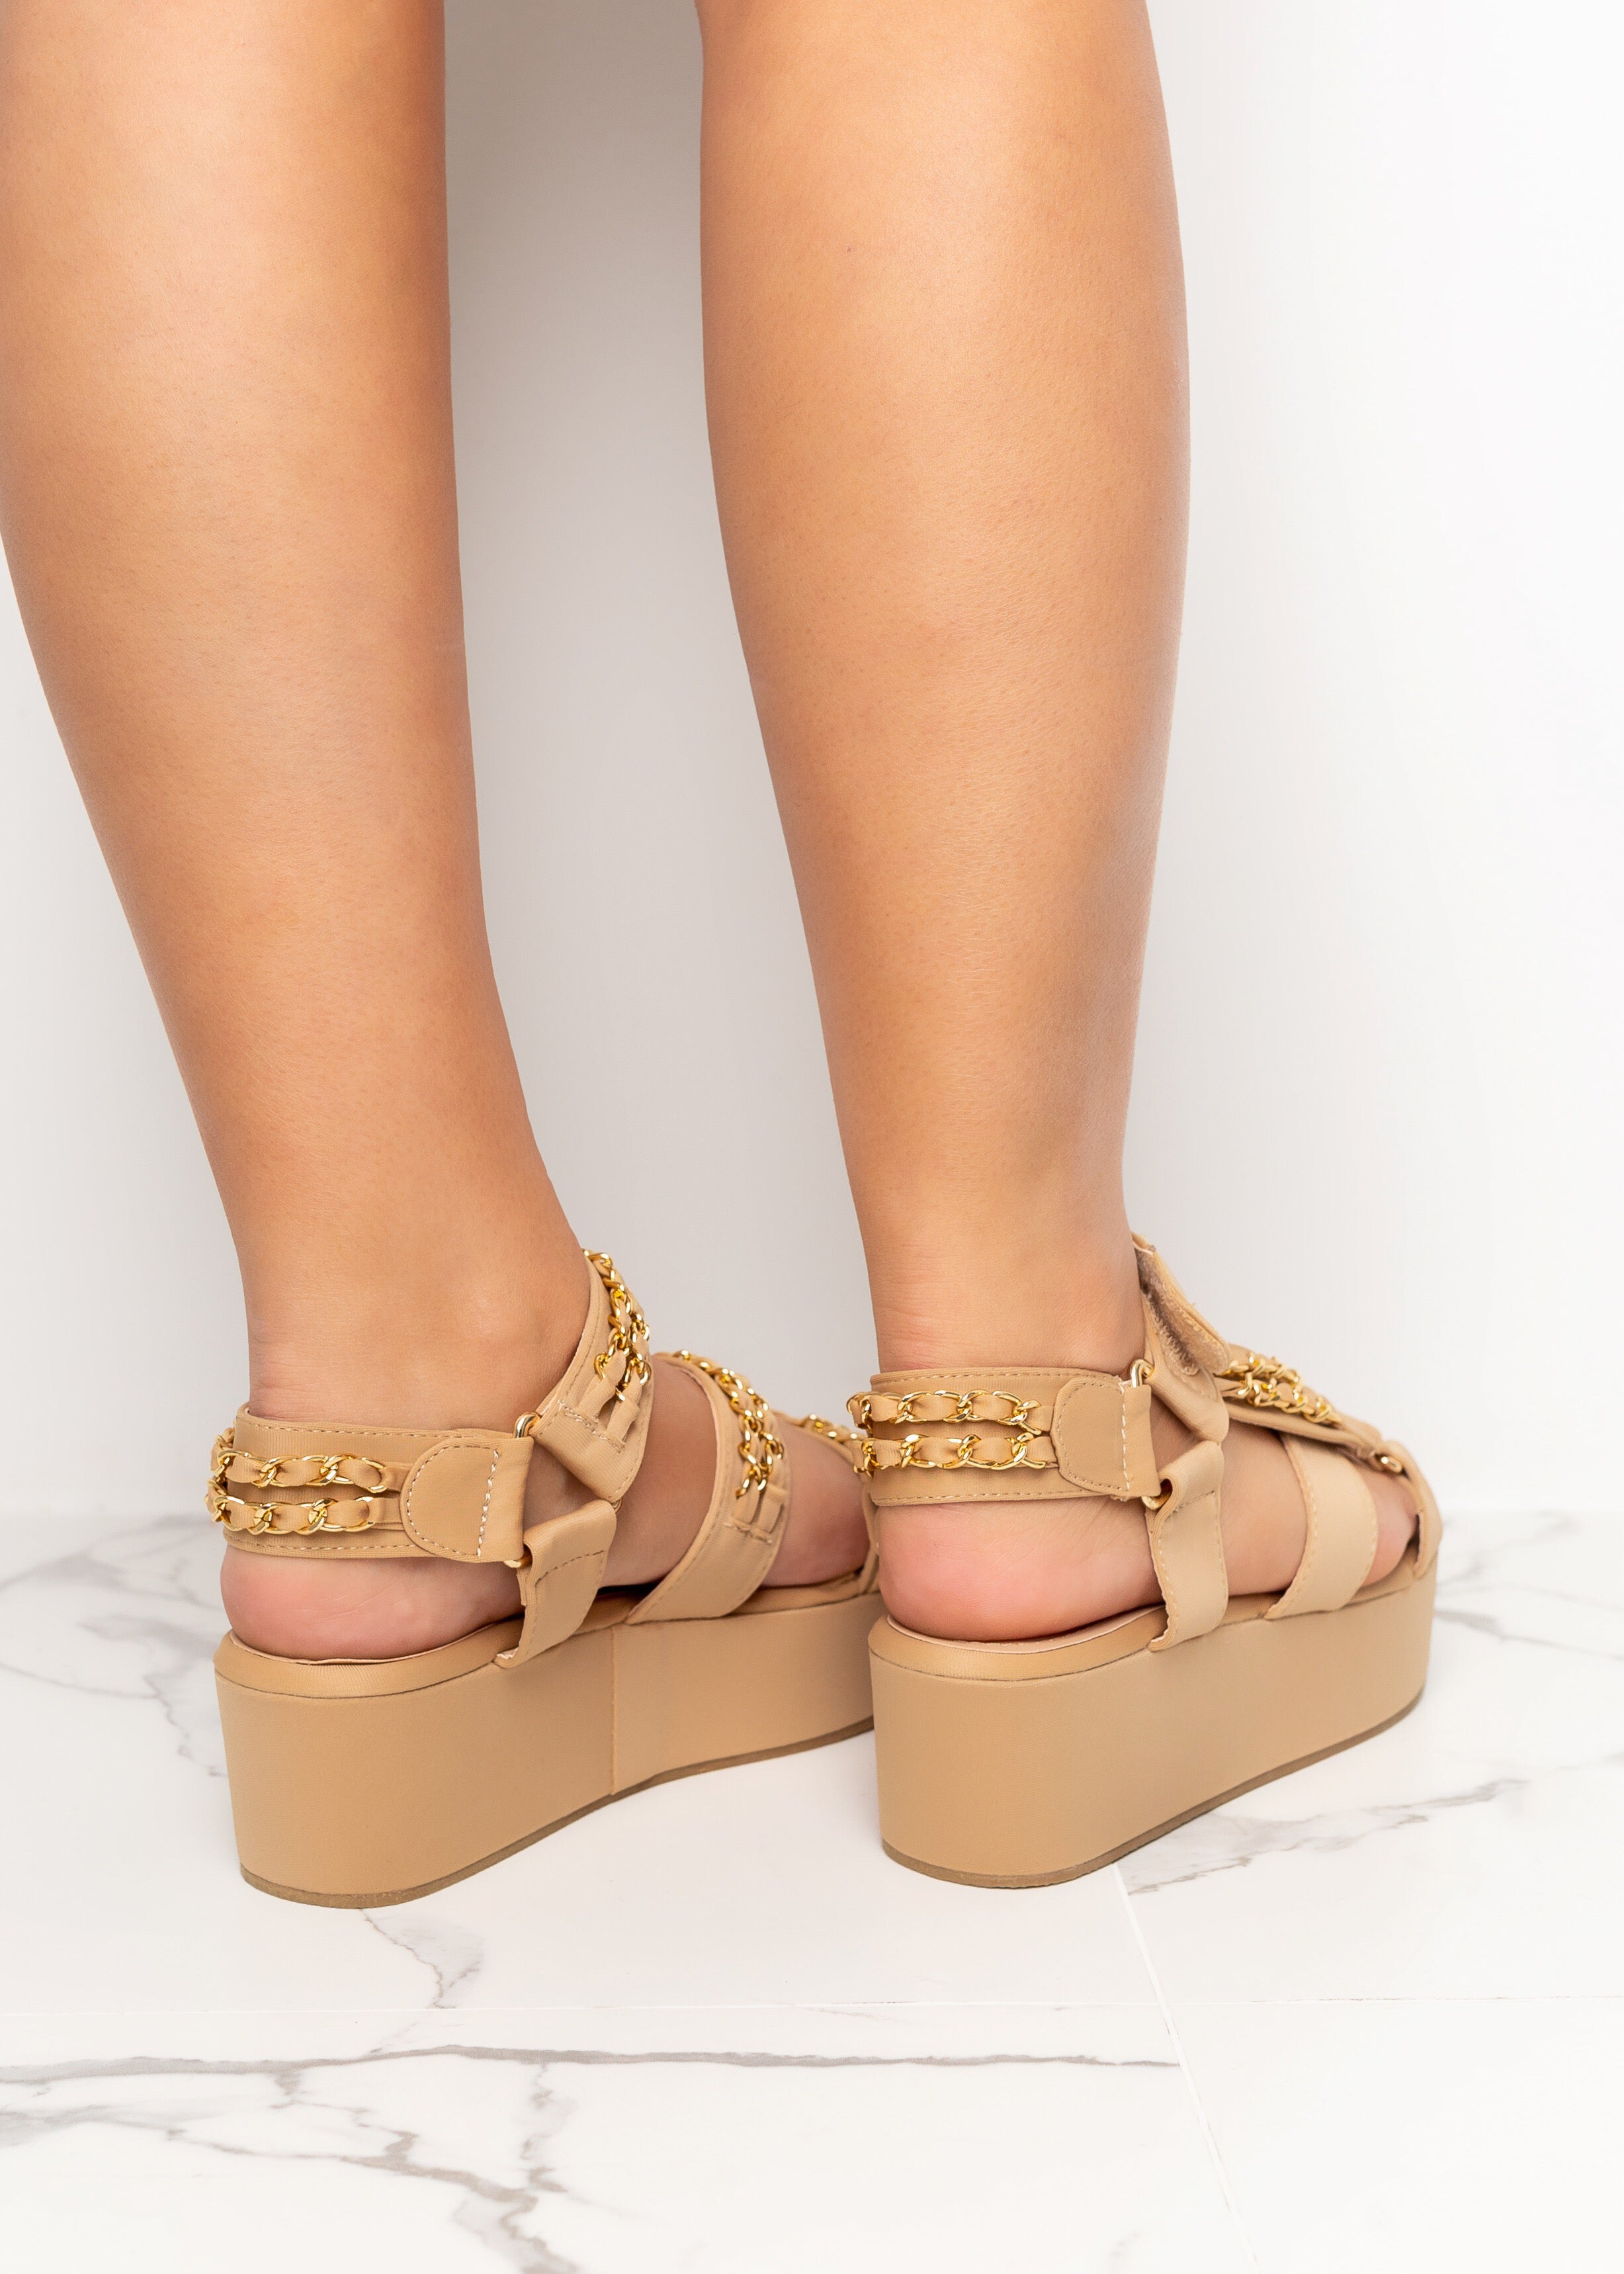 Be Right Back Nude Sandals